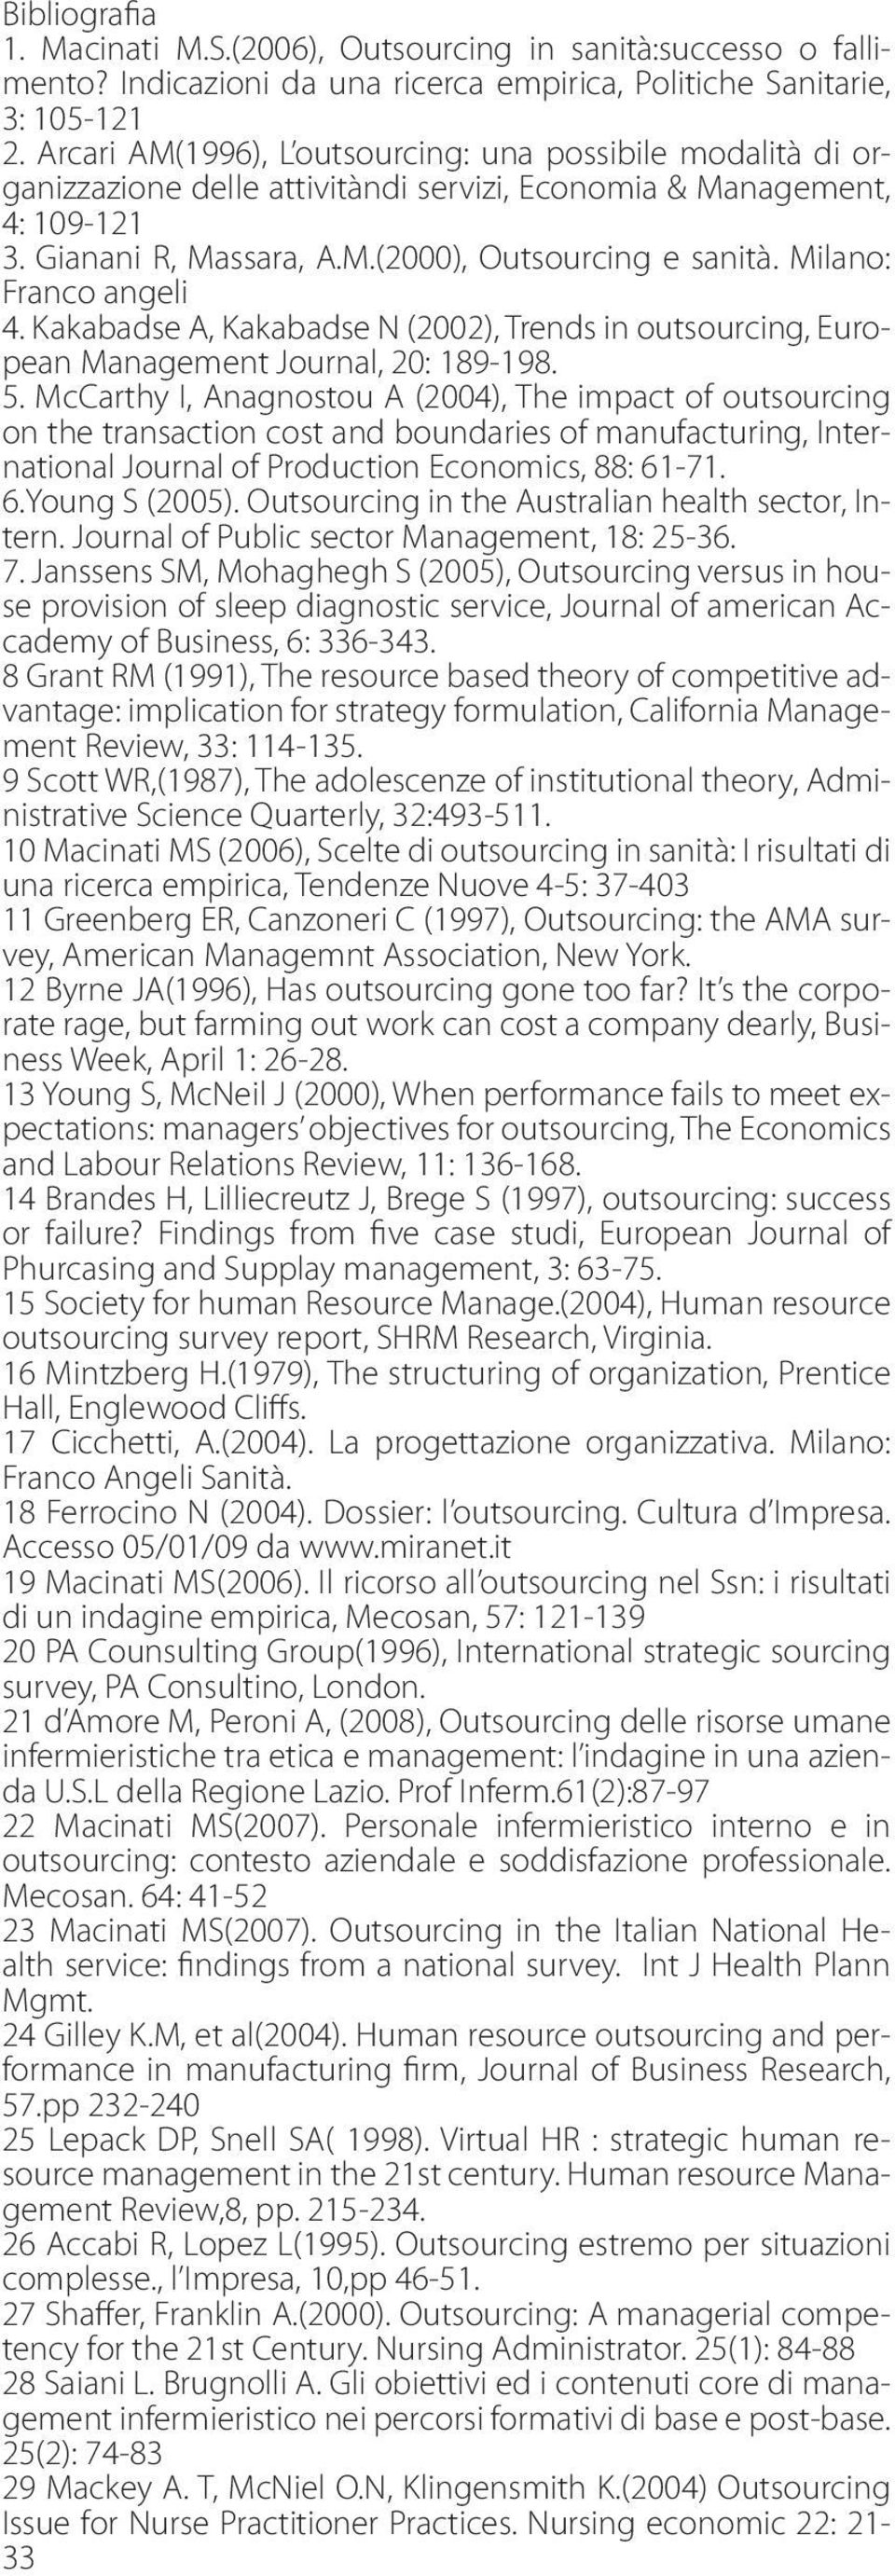 Milano: Franco angeli 4. Kakabadse A, Kakabadse N (2002), Trends in outsourcing, European Management Journal, 20: 189-198. 5.